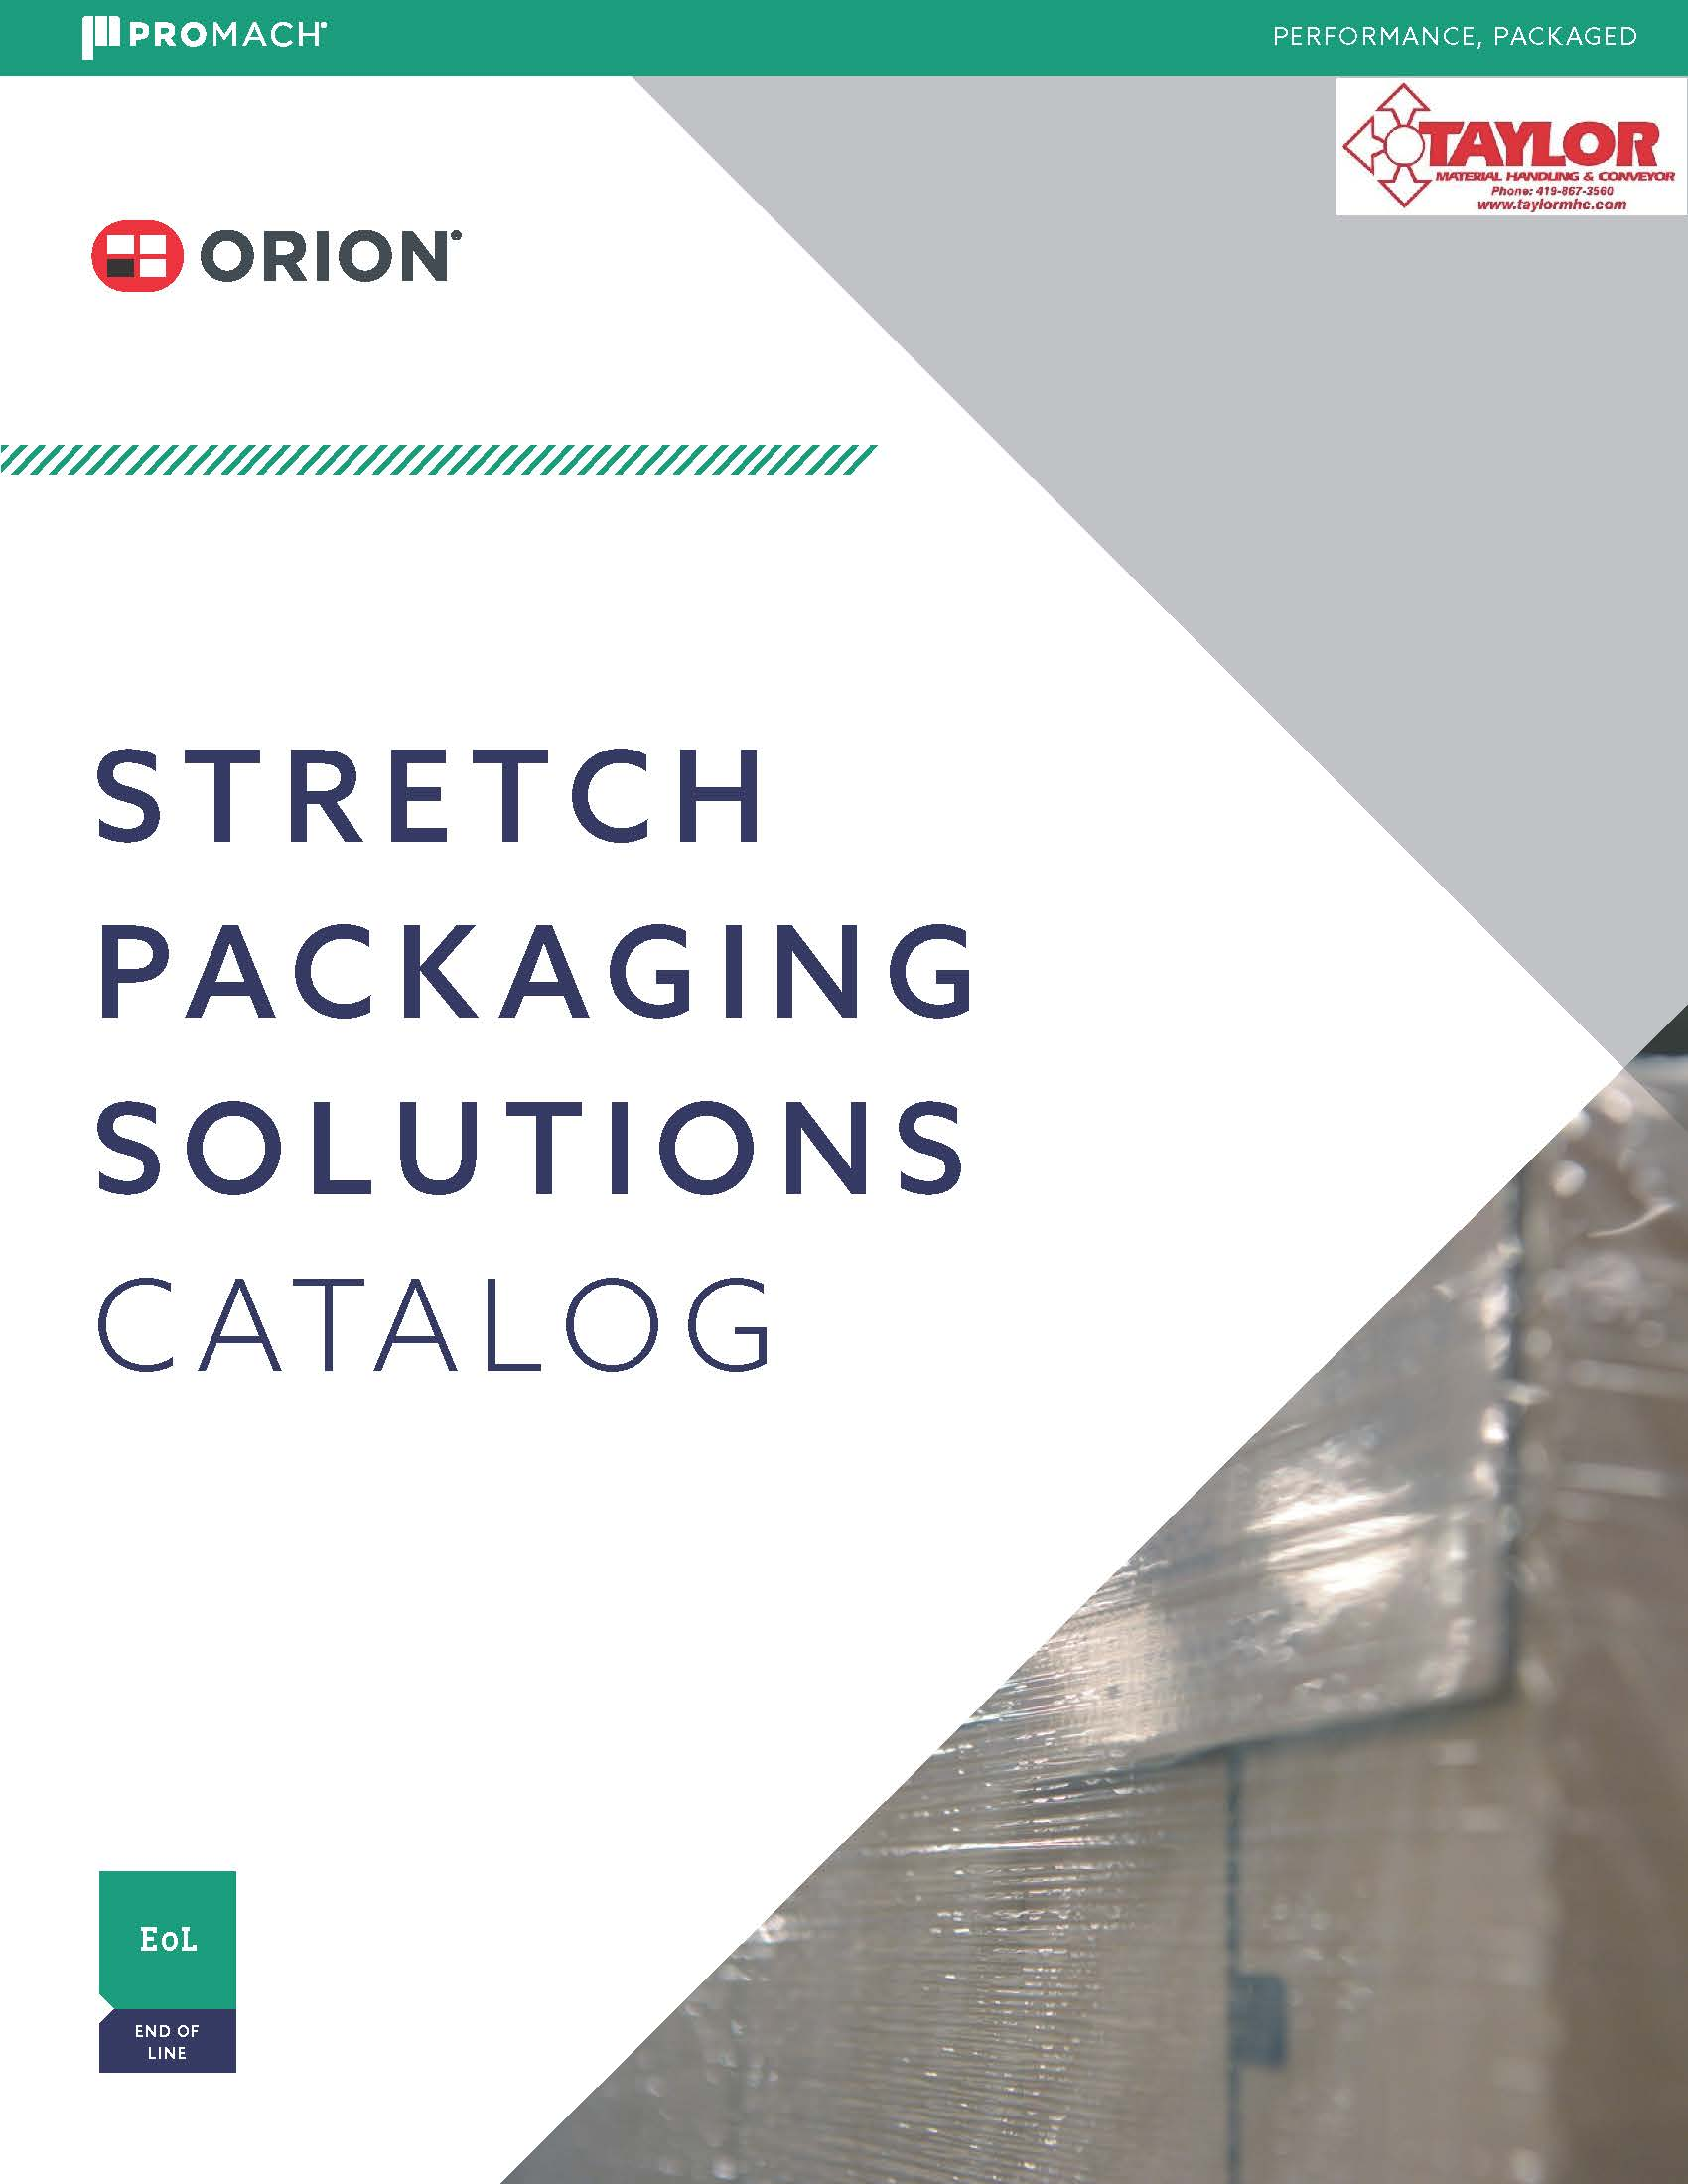 Orion Packaging Equipment